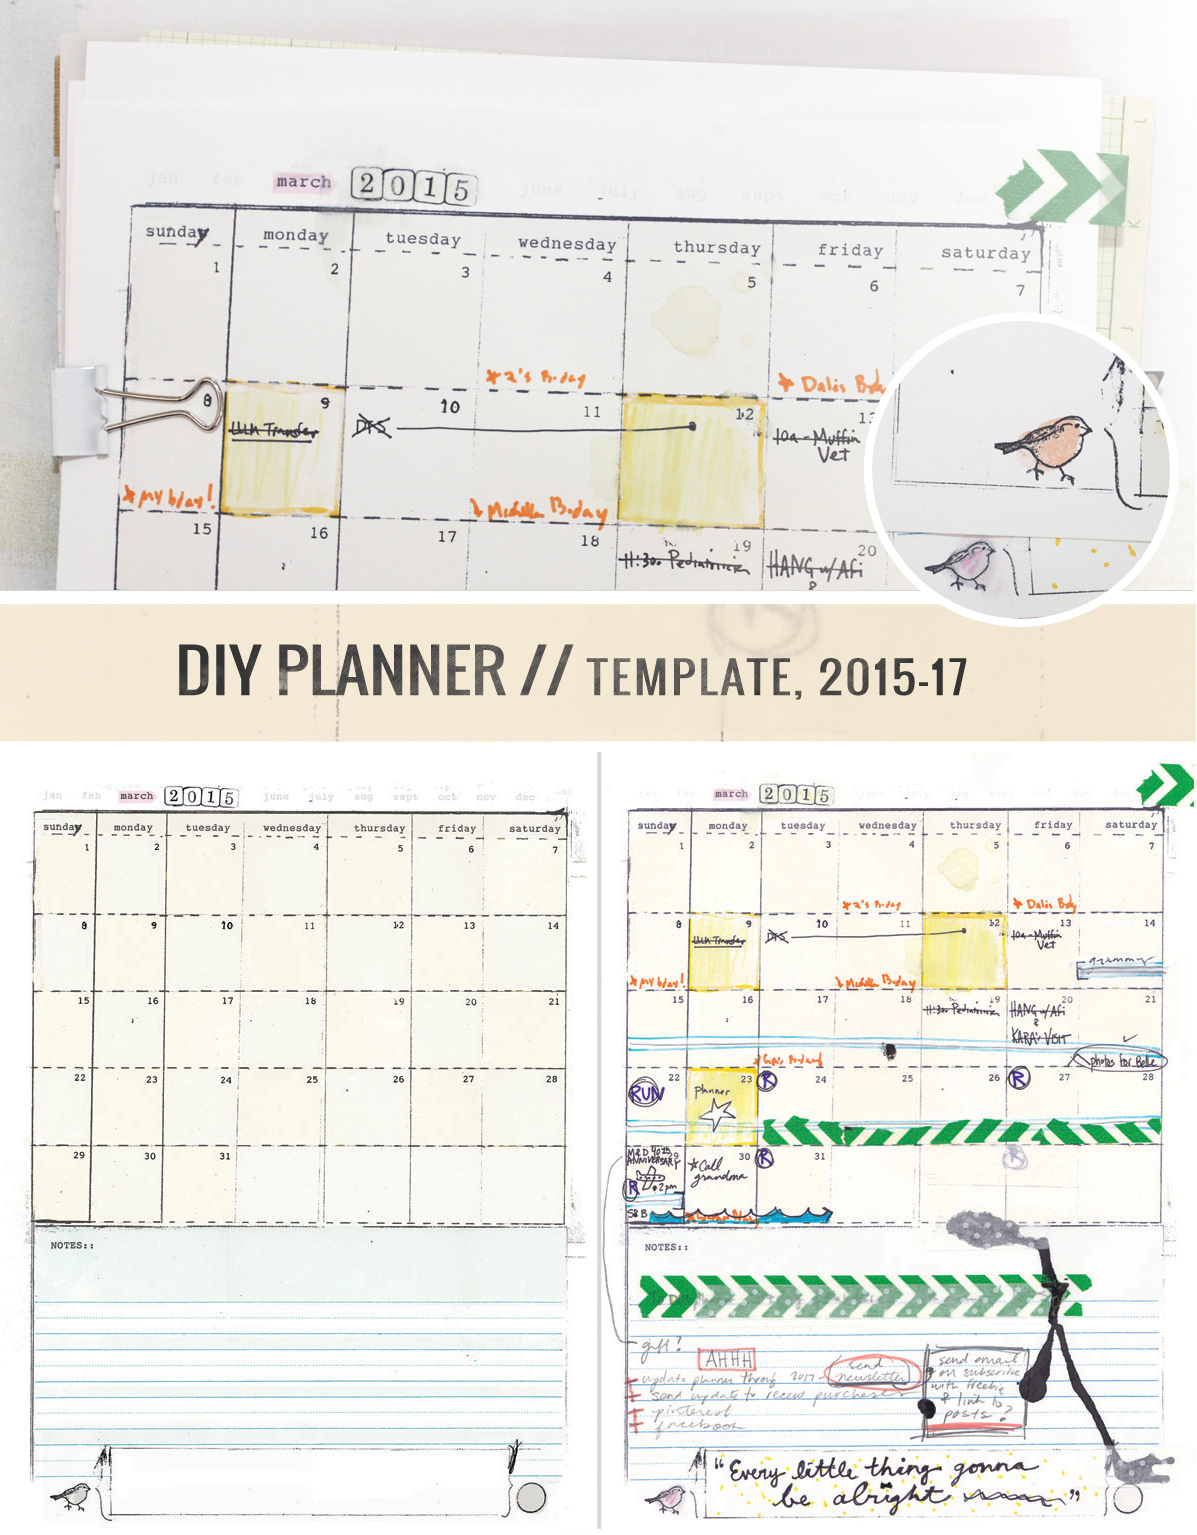 Make your own handmade, hand-drawn, mismatched DIY Planner full of doodles, goals, life plans and everything YOU. Templates designed to leave lots of room for personalization... Includes: January 2015 – December 2017 monthly, fill-in-the-blank month, fill-